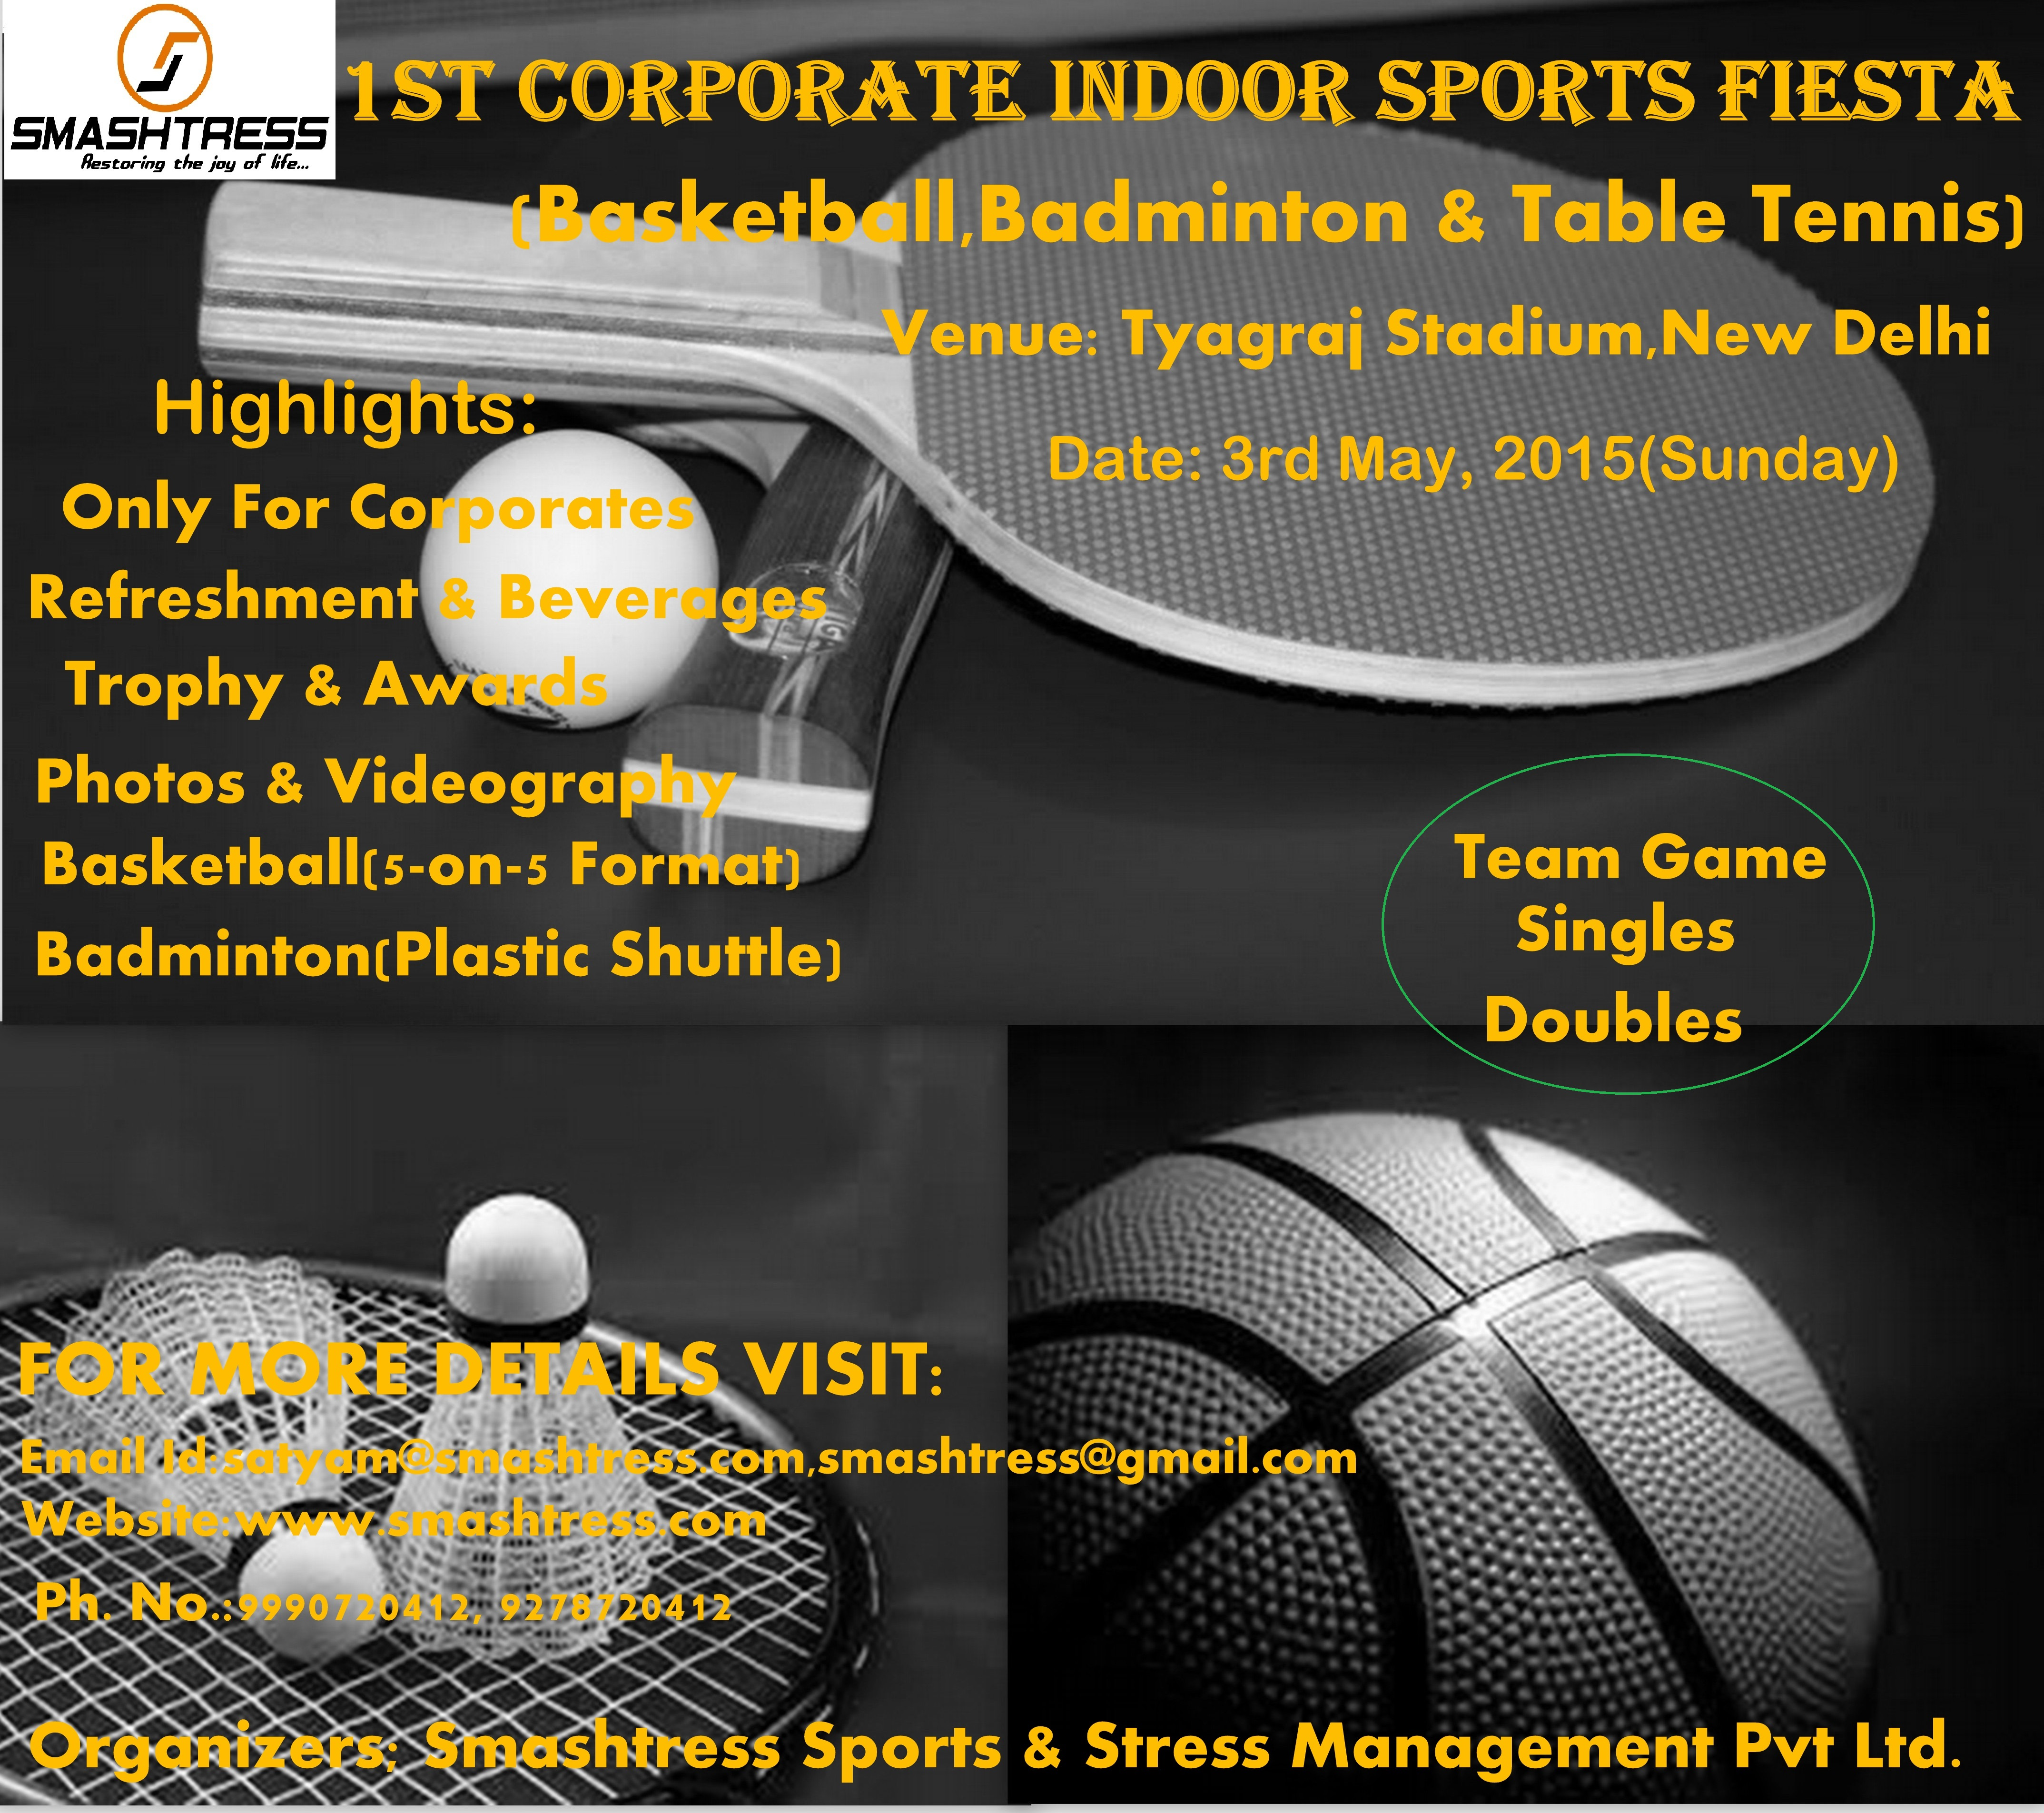 1st Corporate Indoor Sports Fiesta